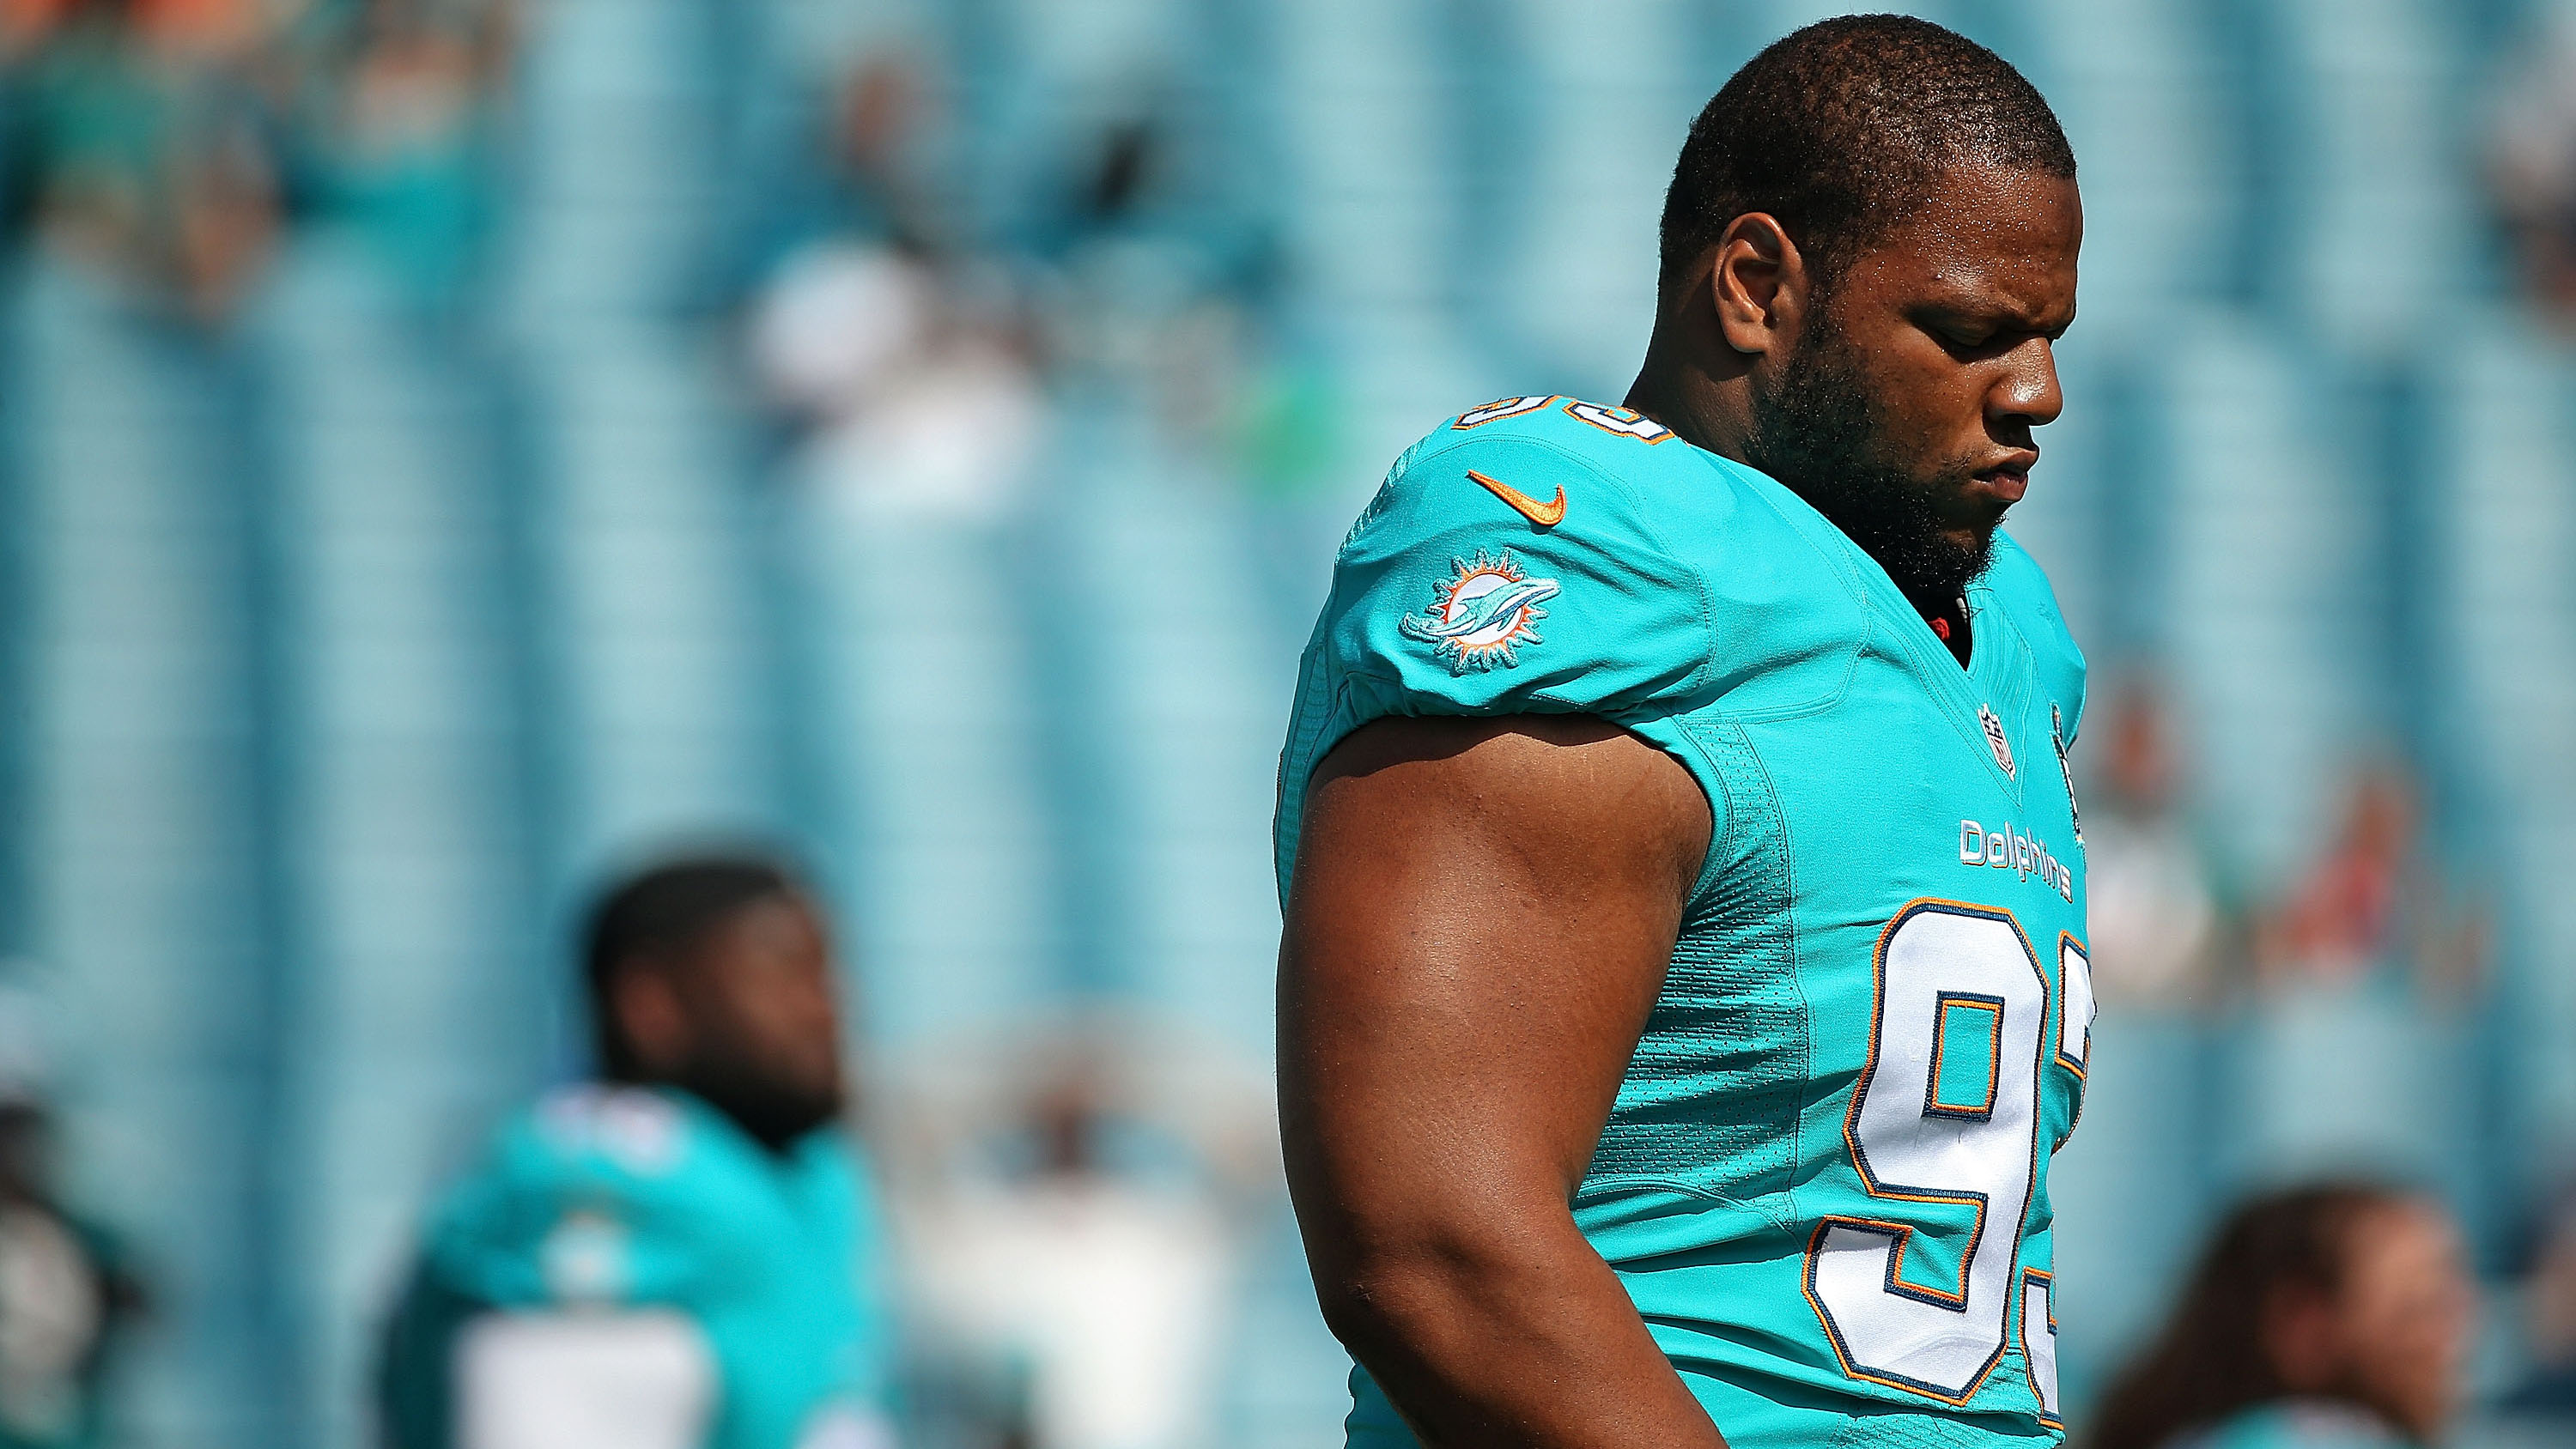 Miami Dolphins Ndamukong Suh ignored coach in loss to Jaguars